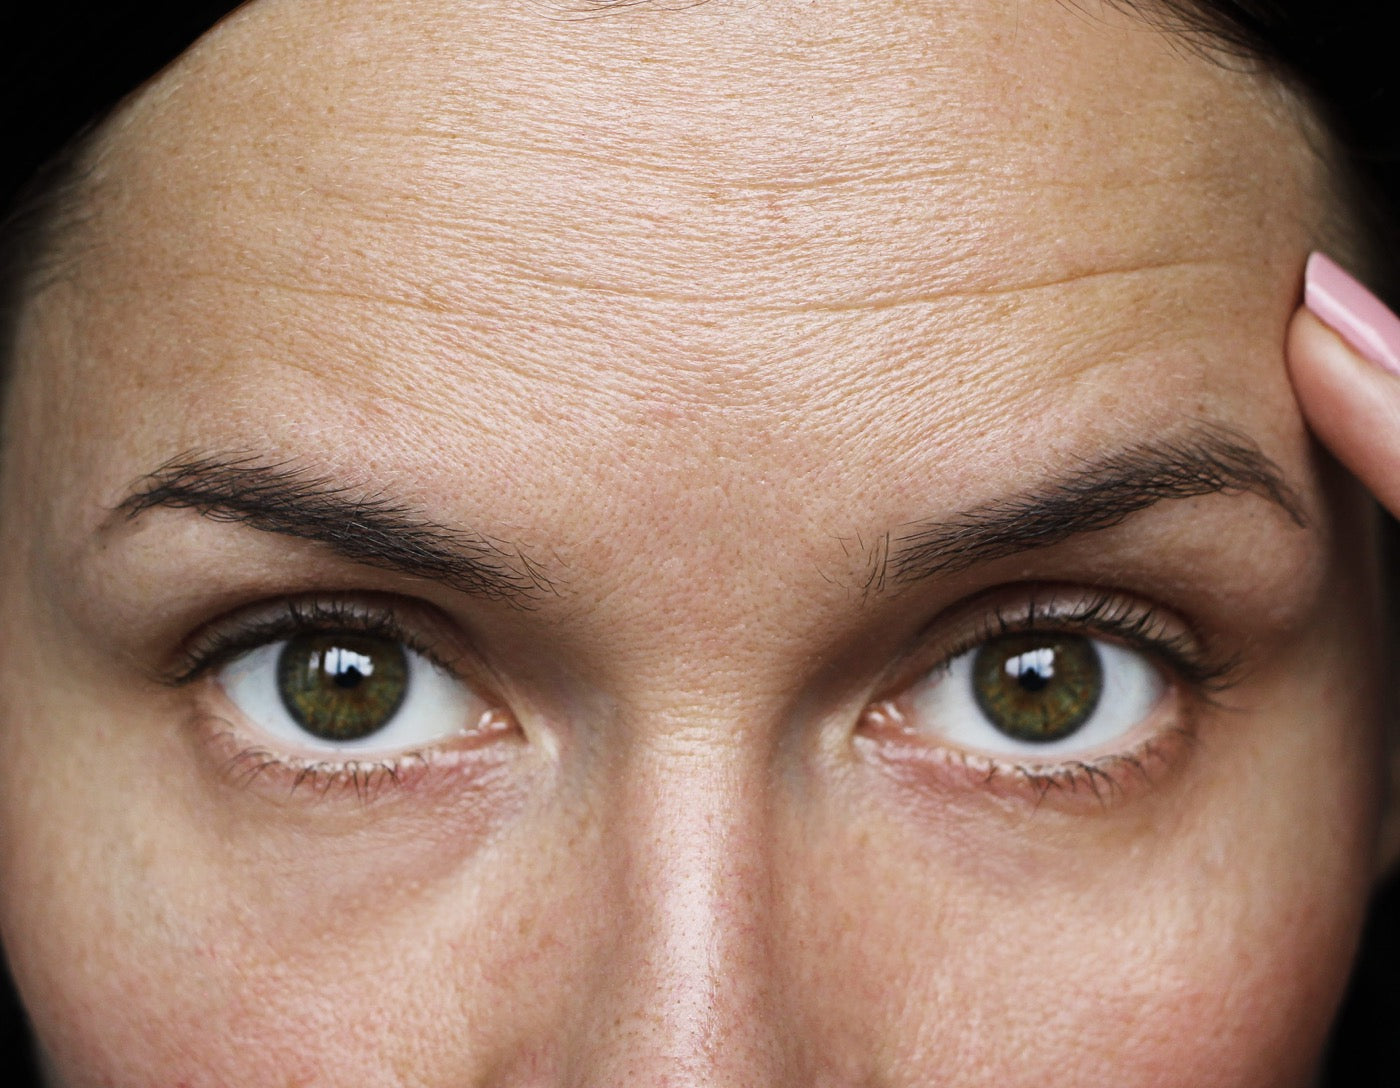 Womens face showing forehead wrinkles